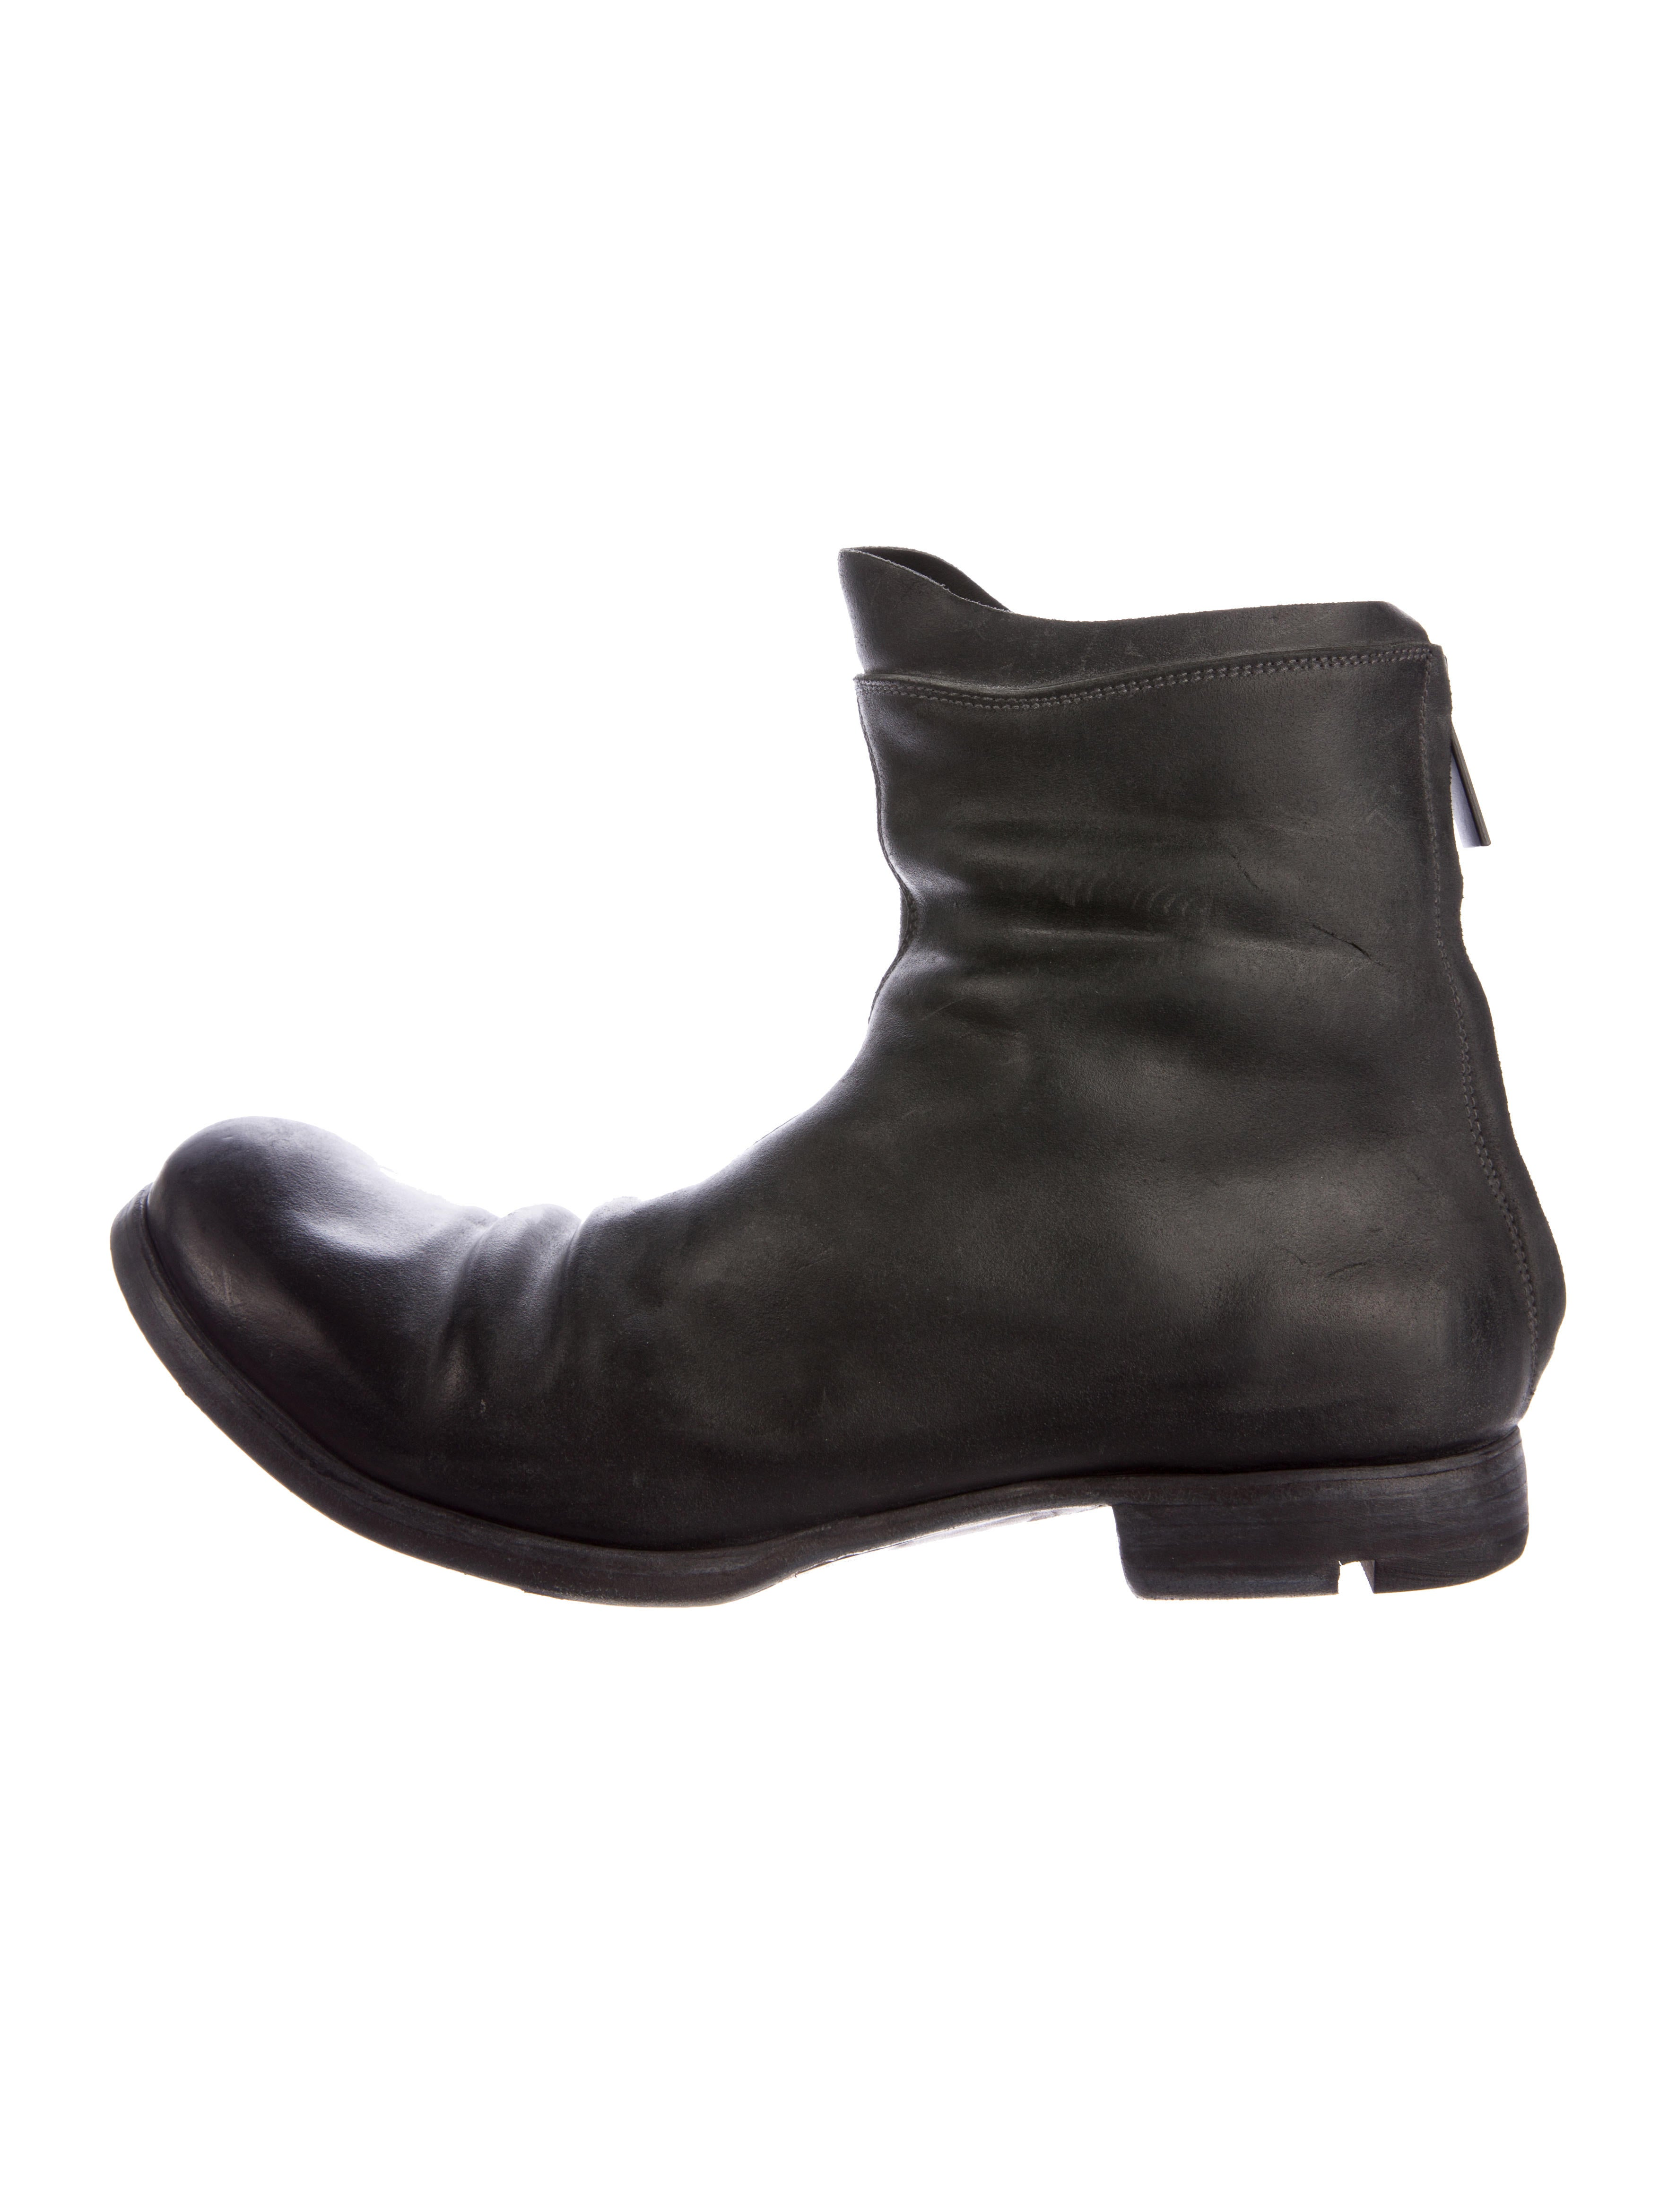 layer 0 shearling lined ankle boots shoes wlaye20001